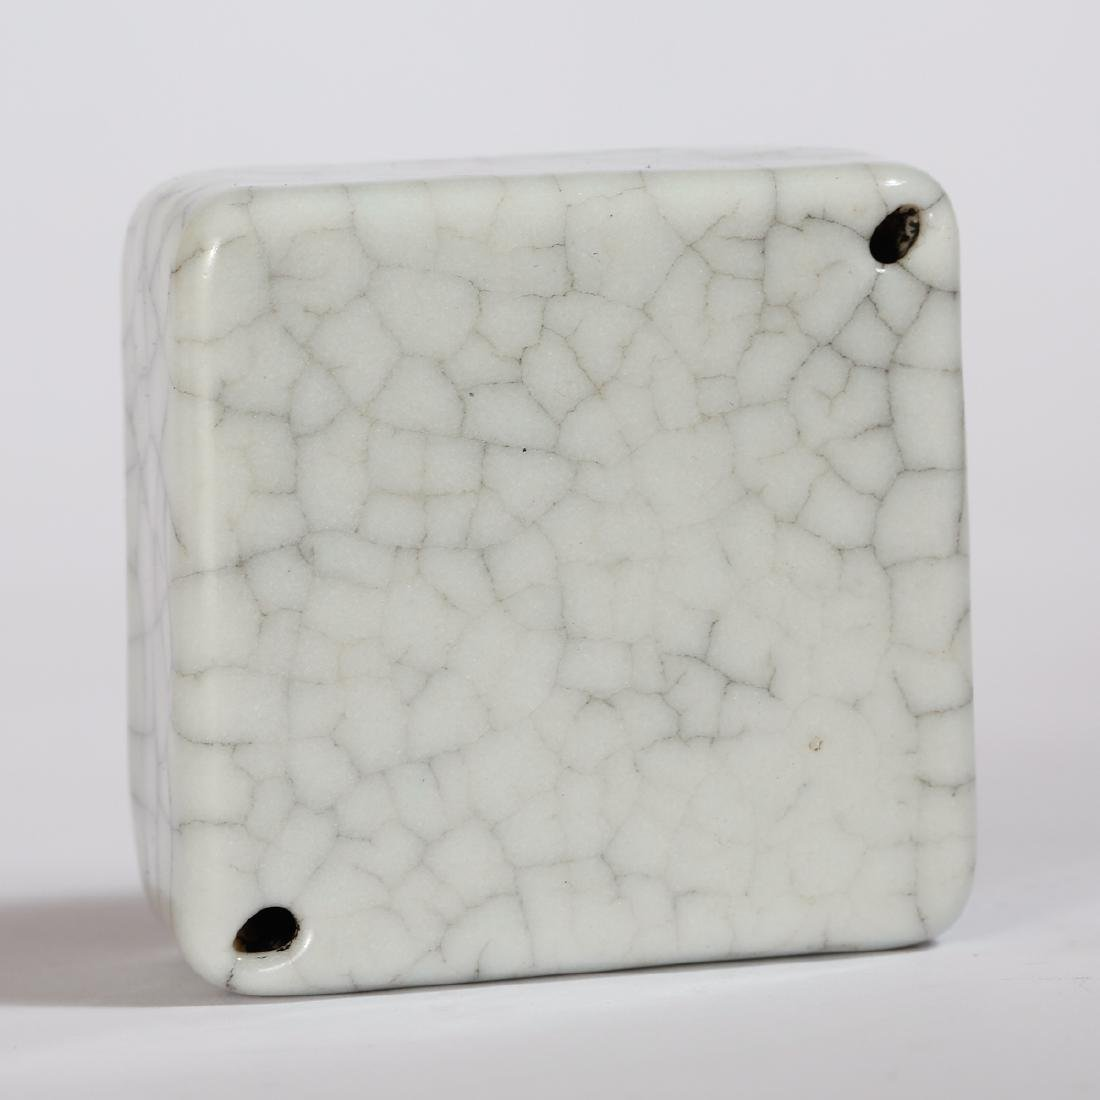 CHINESE CRACKLE GLAZED PORCELAIN WEIGHT - 3